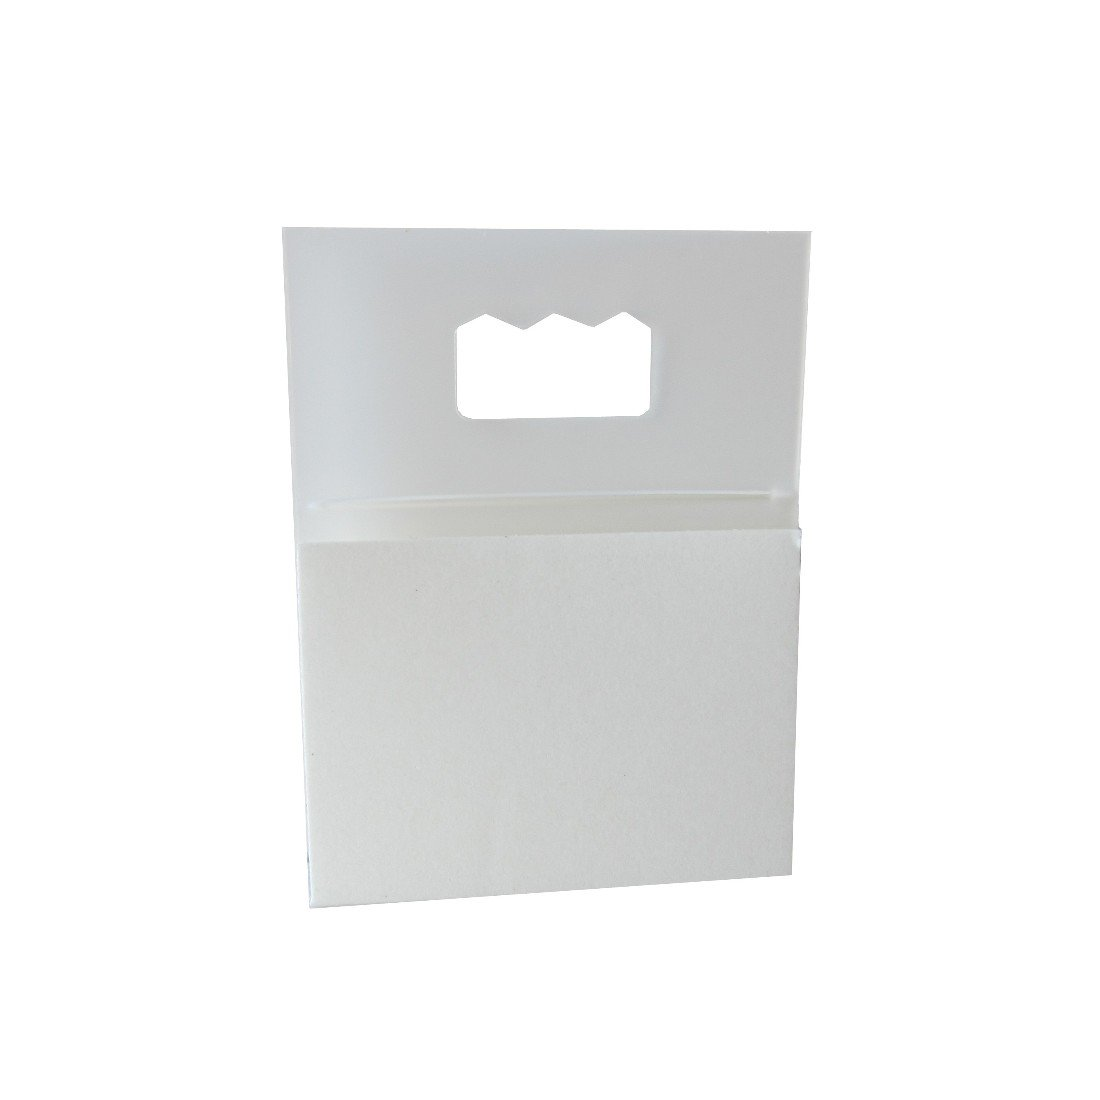 Picture Hangers Adhesive - Plastic Sawtooth Adhesive Picture Hanger - Foamboard Hanger - 30 Pack